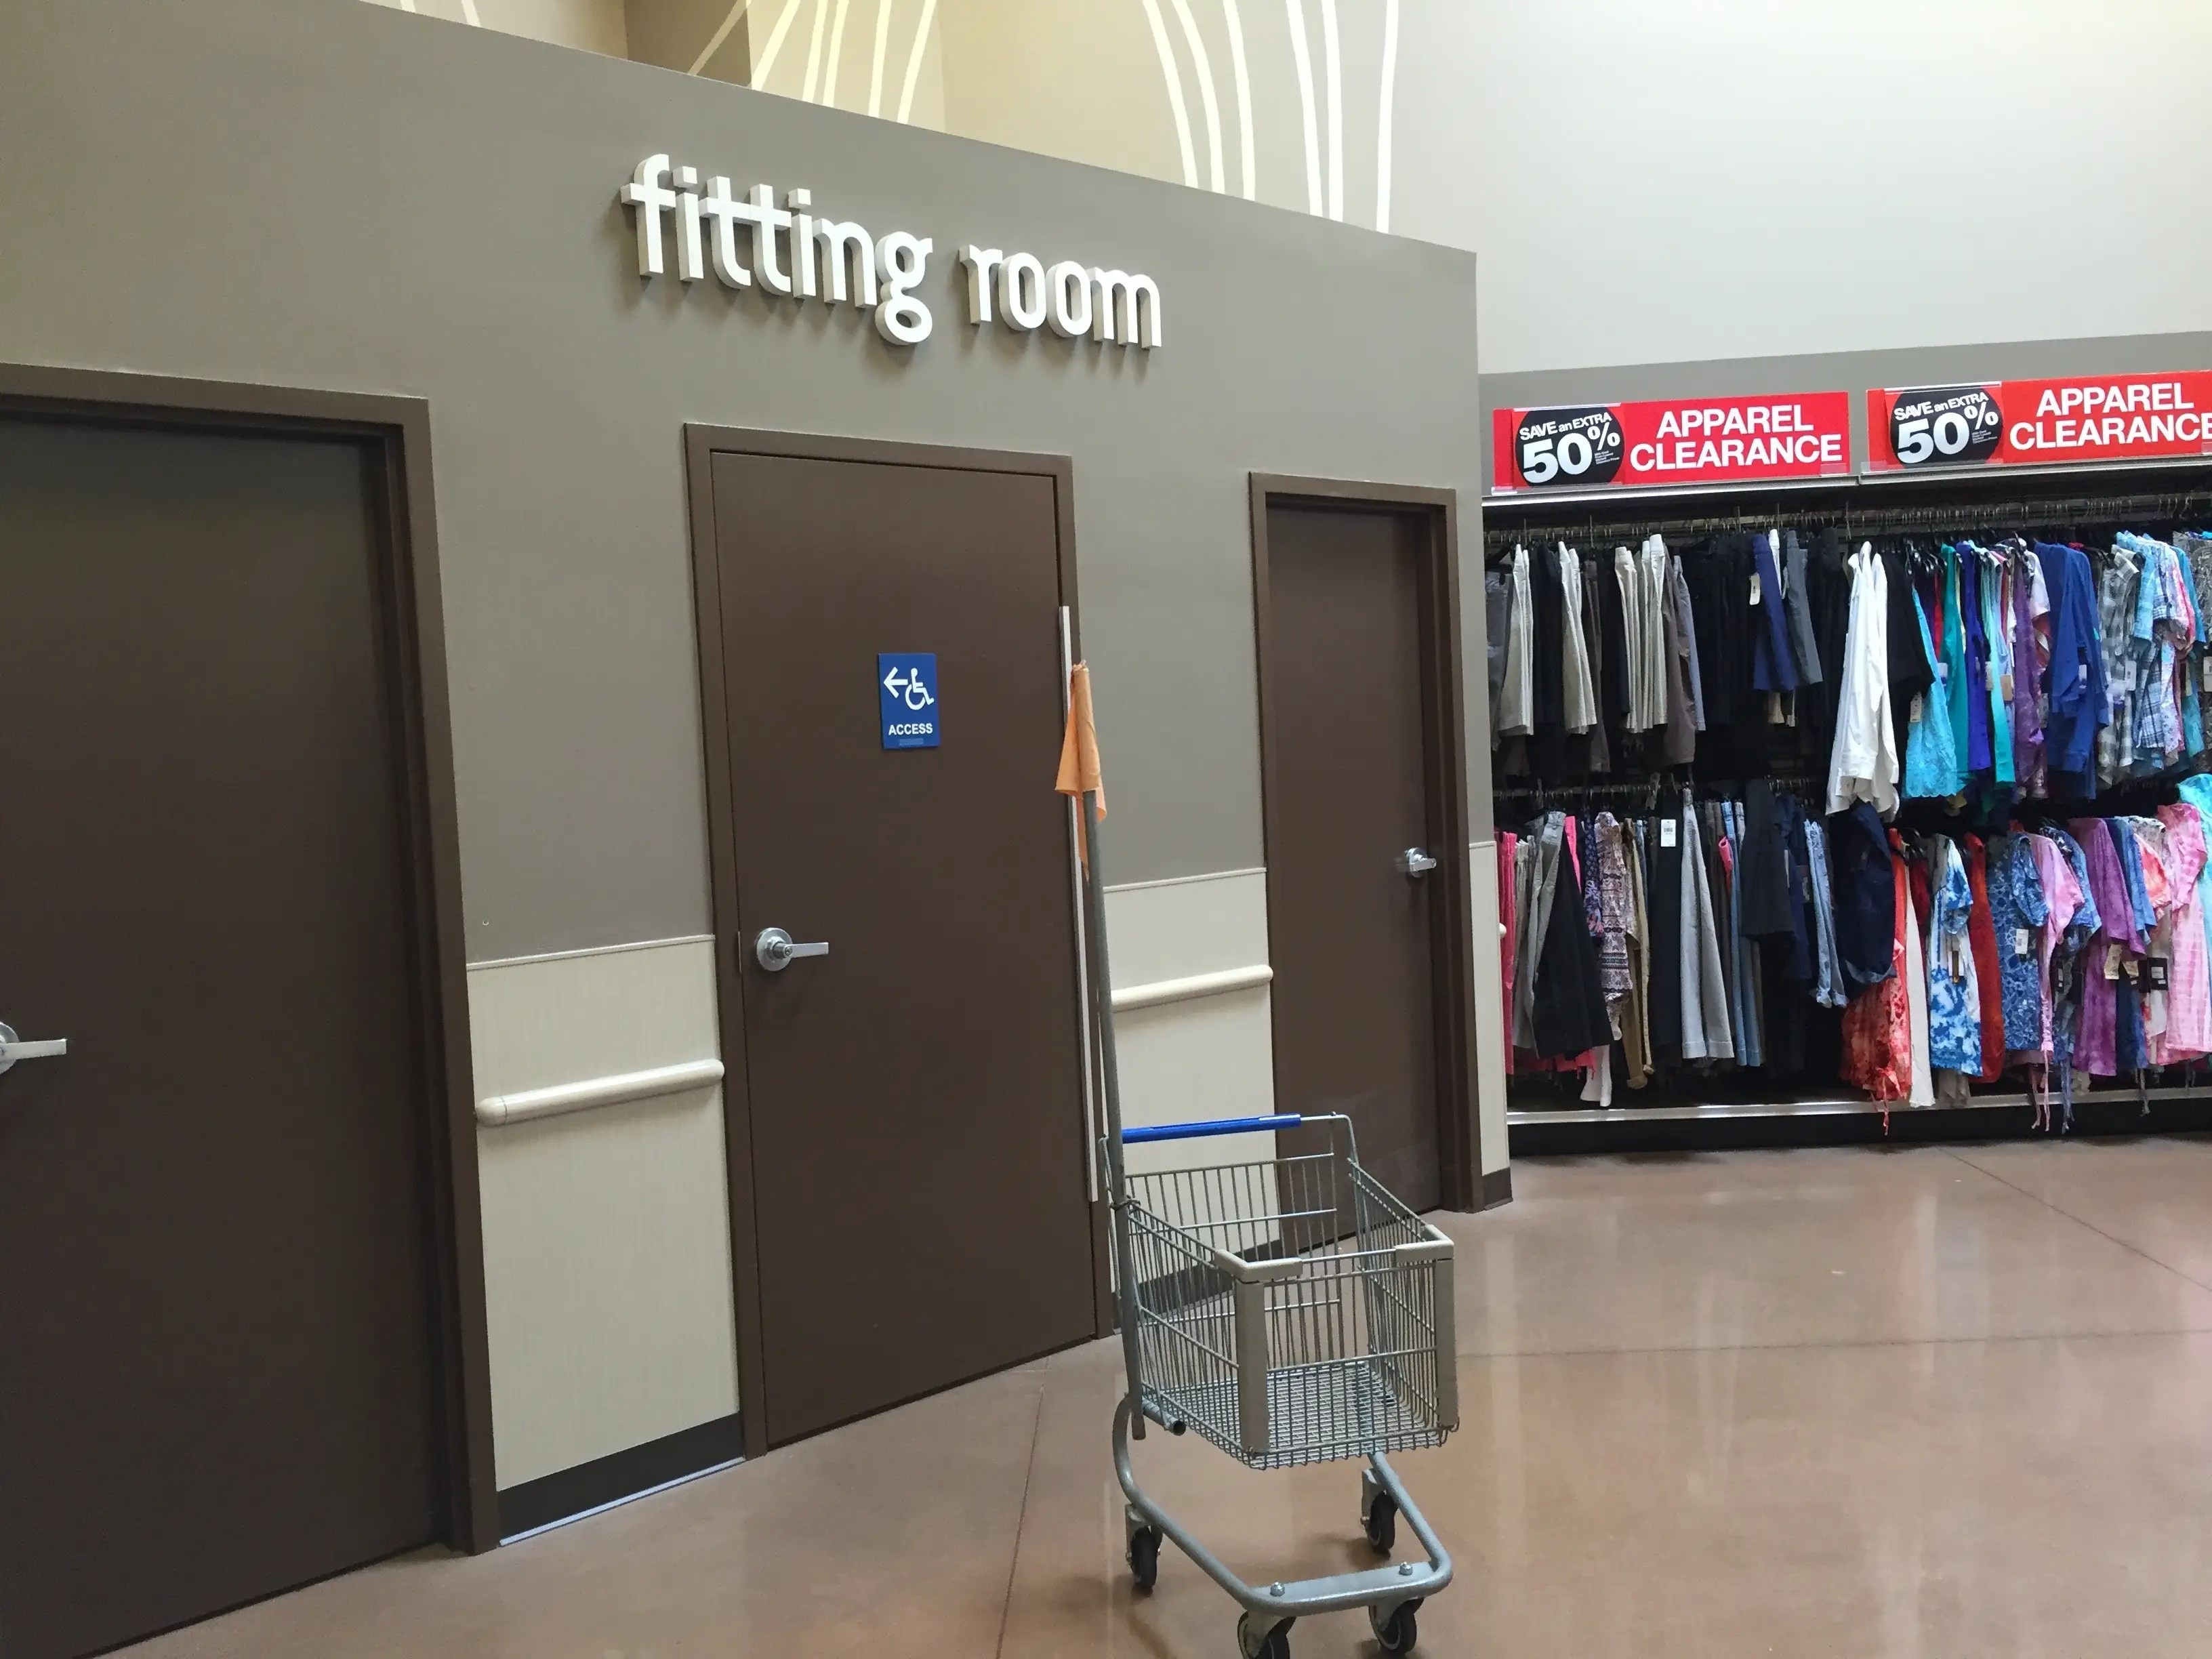 A fitting room is on site for anyone who wants to try the clothes on.